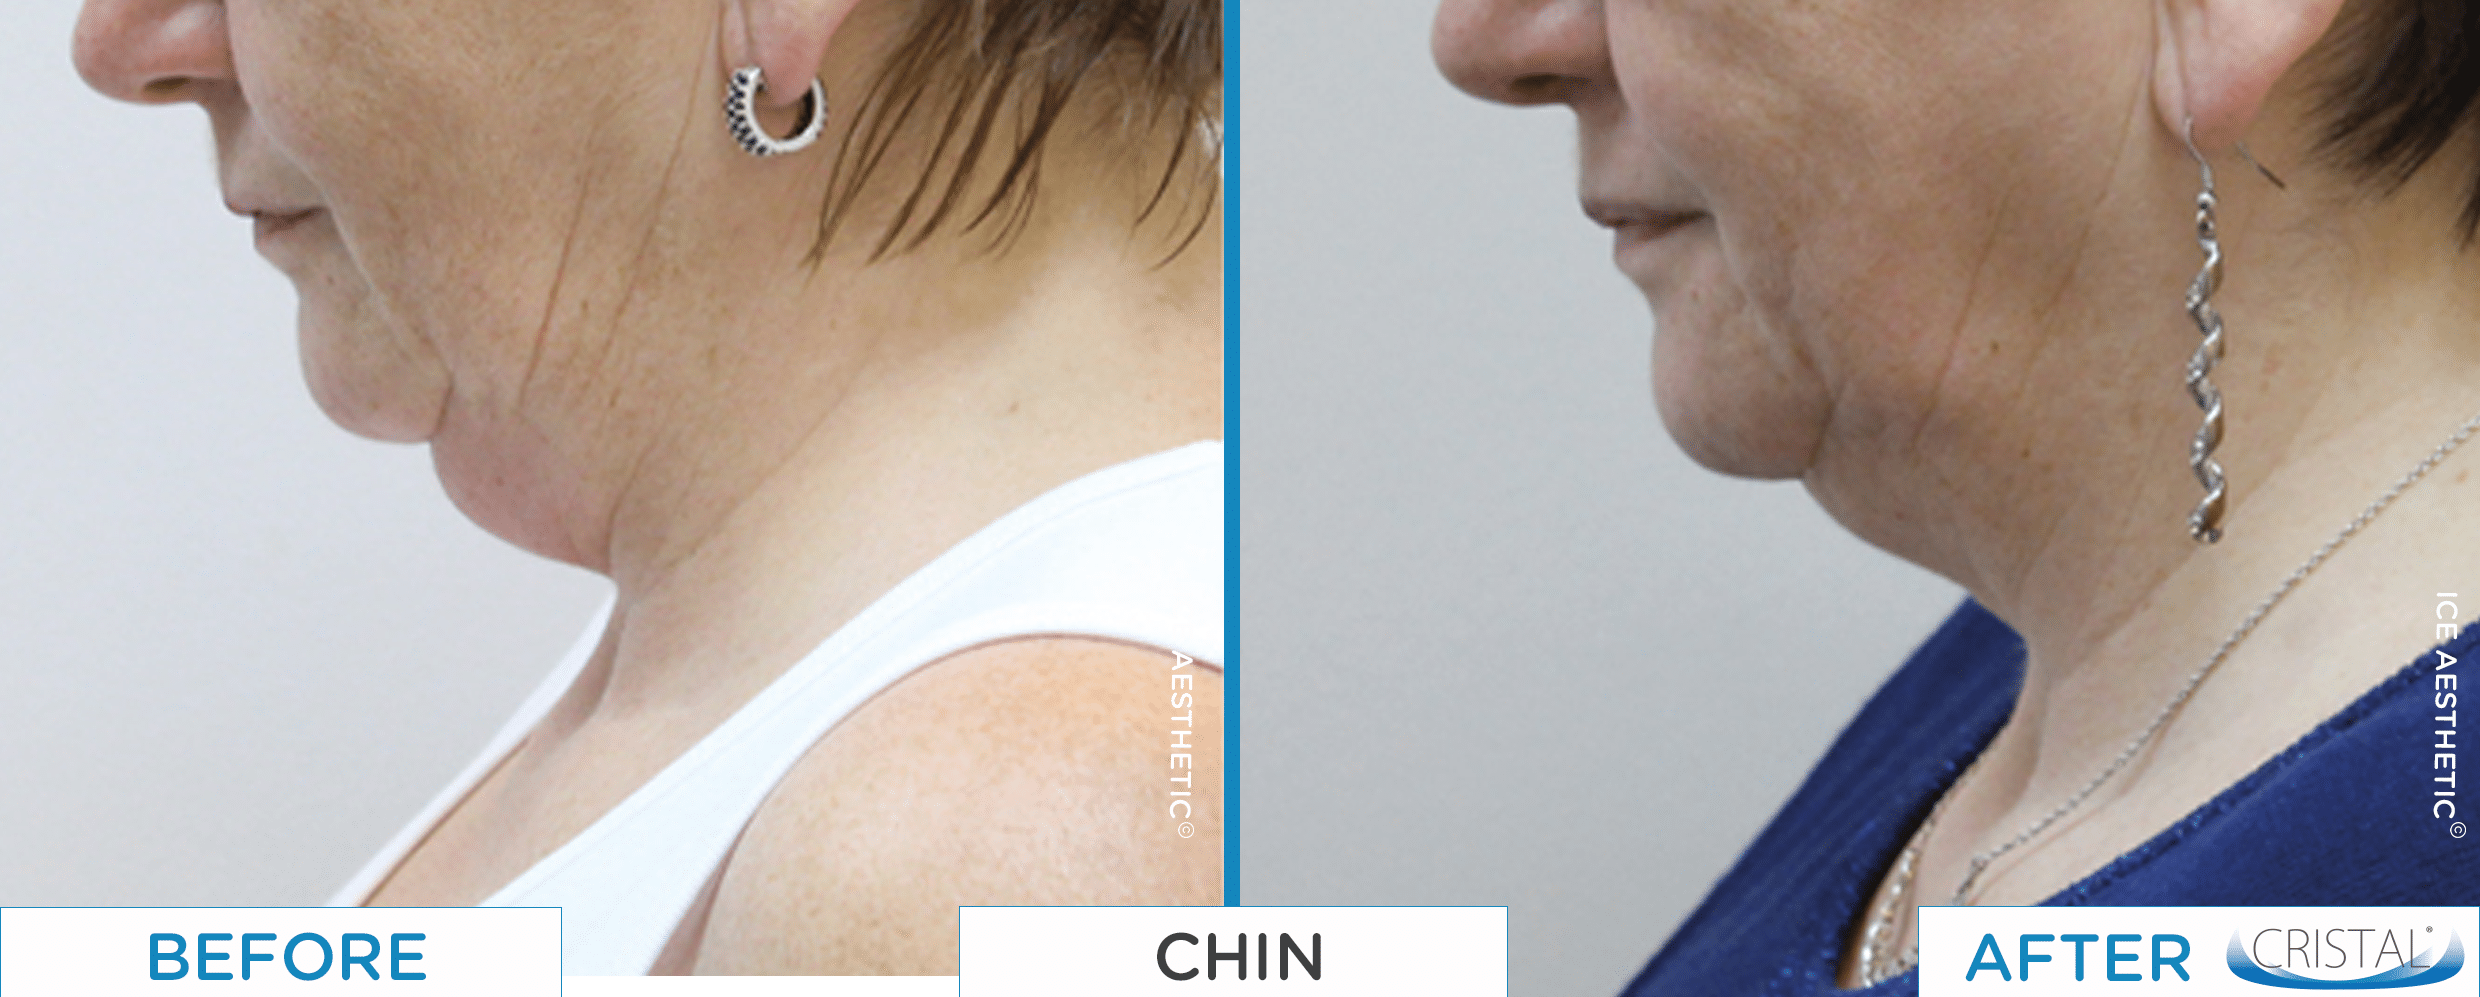 CRISTAL before and after chin